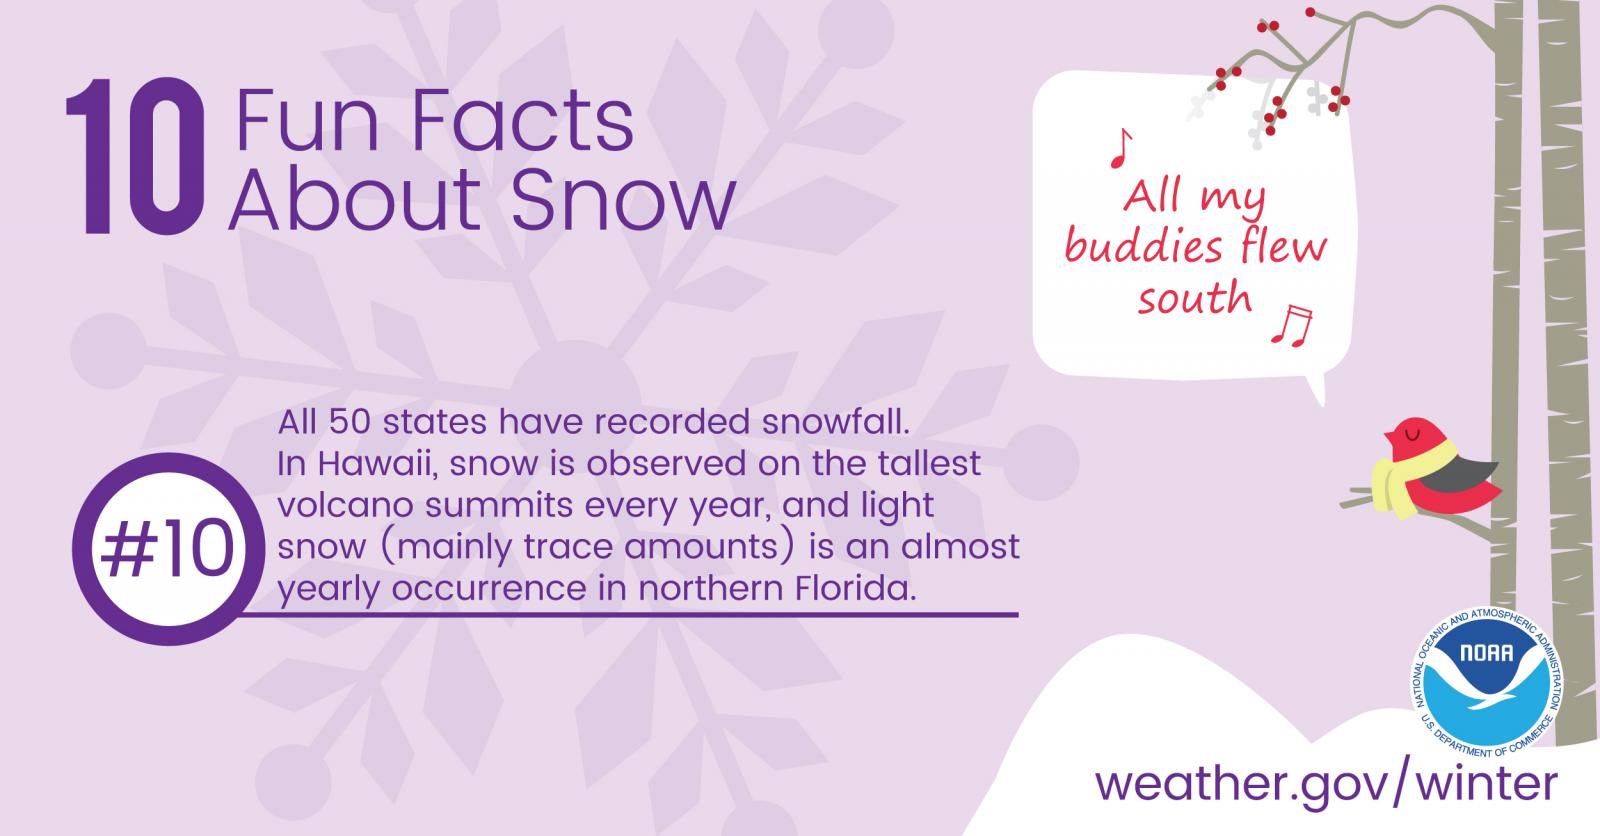 Snow Fun Facts